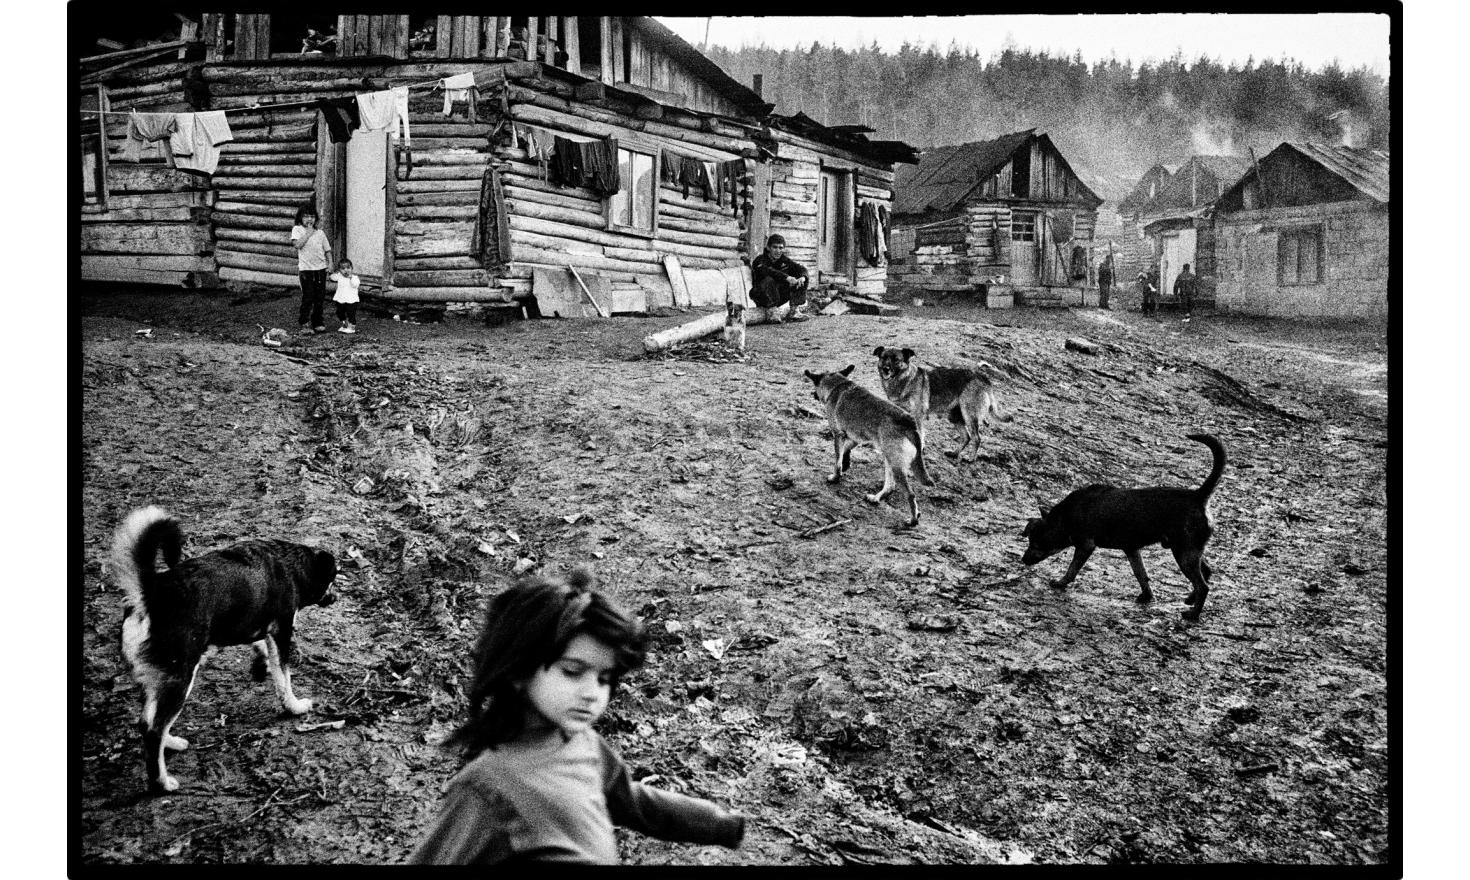 """""""Roma osada"""", roma district of Letanovce, located at 2 kilometers from the center, at the edge of the National park of the slovak paradise. Slovakia, November 2009."""